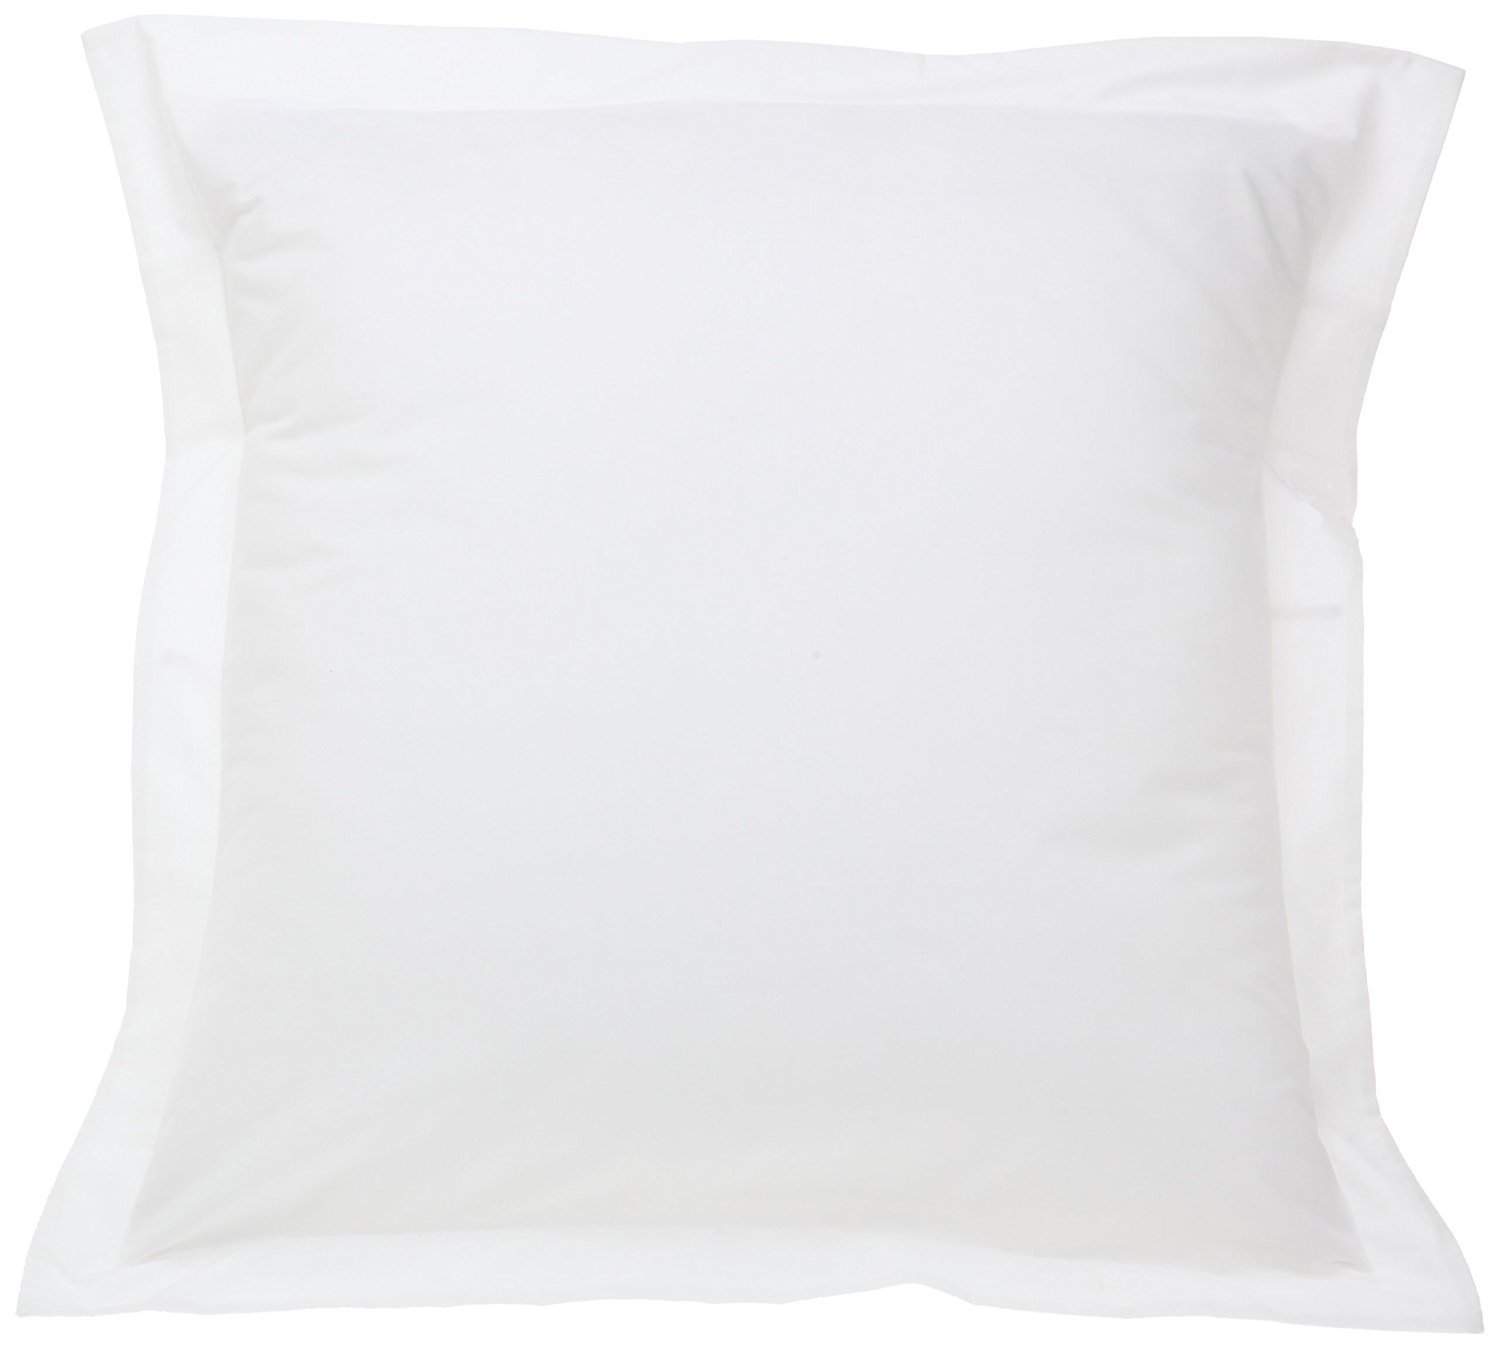 Home Decore Linen 600-Thread-Count Egyptian Cotton Euro/European ( 26'' X 26'' ) Size 2 Piece Pillow Shams Cover Only White Solid